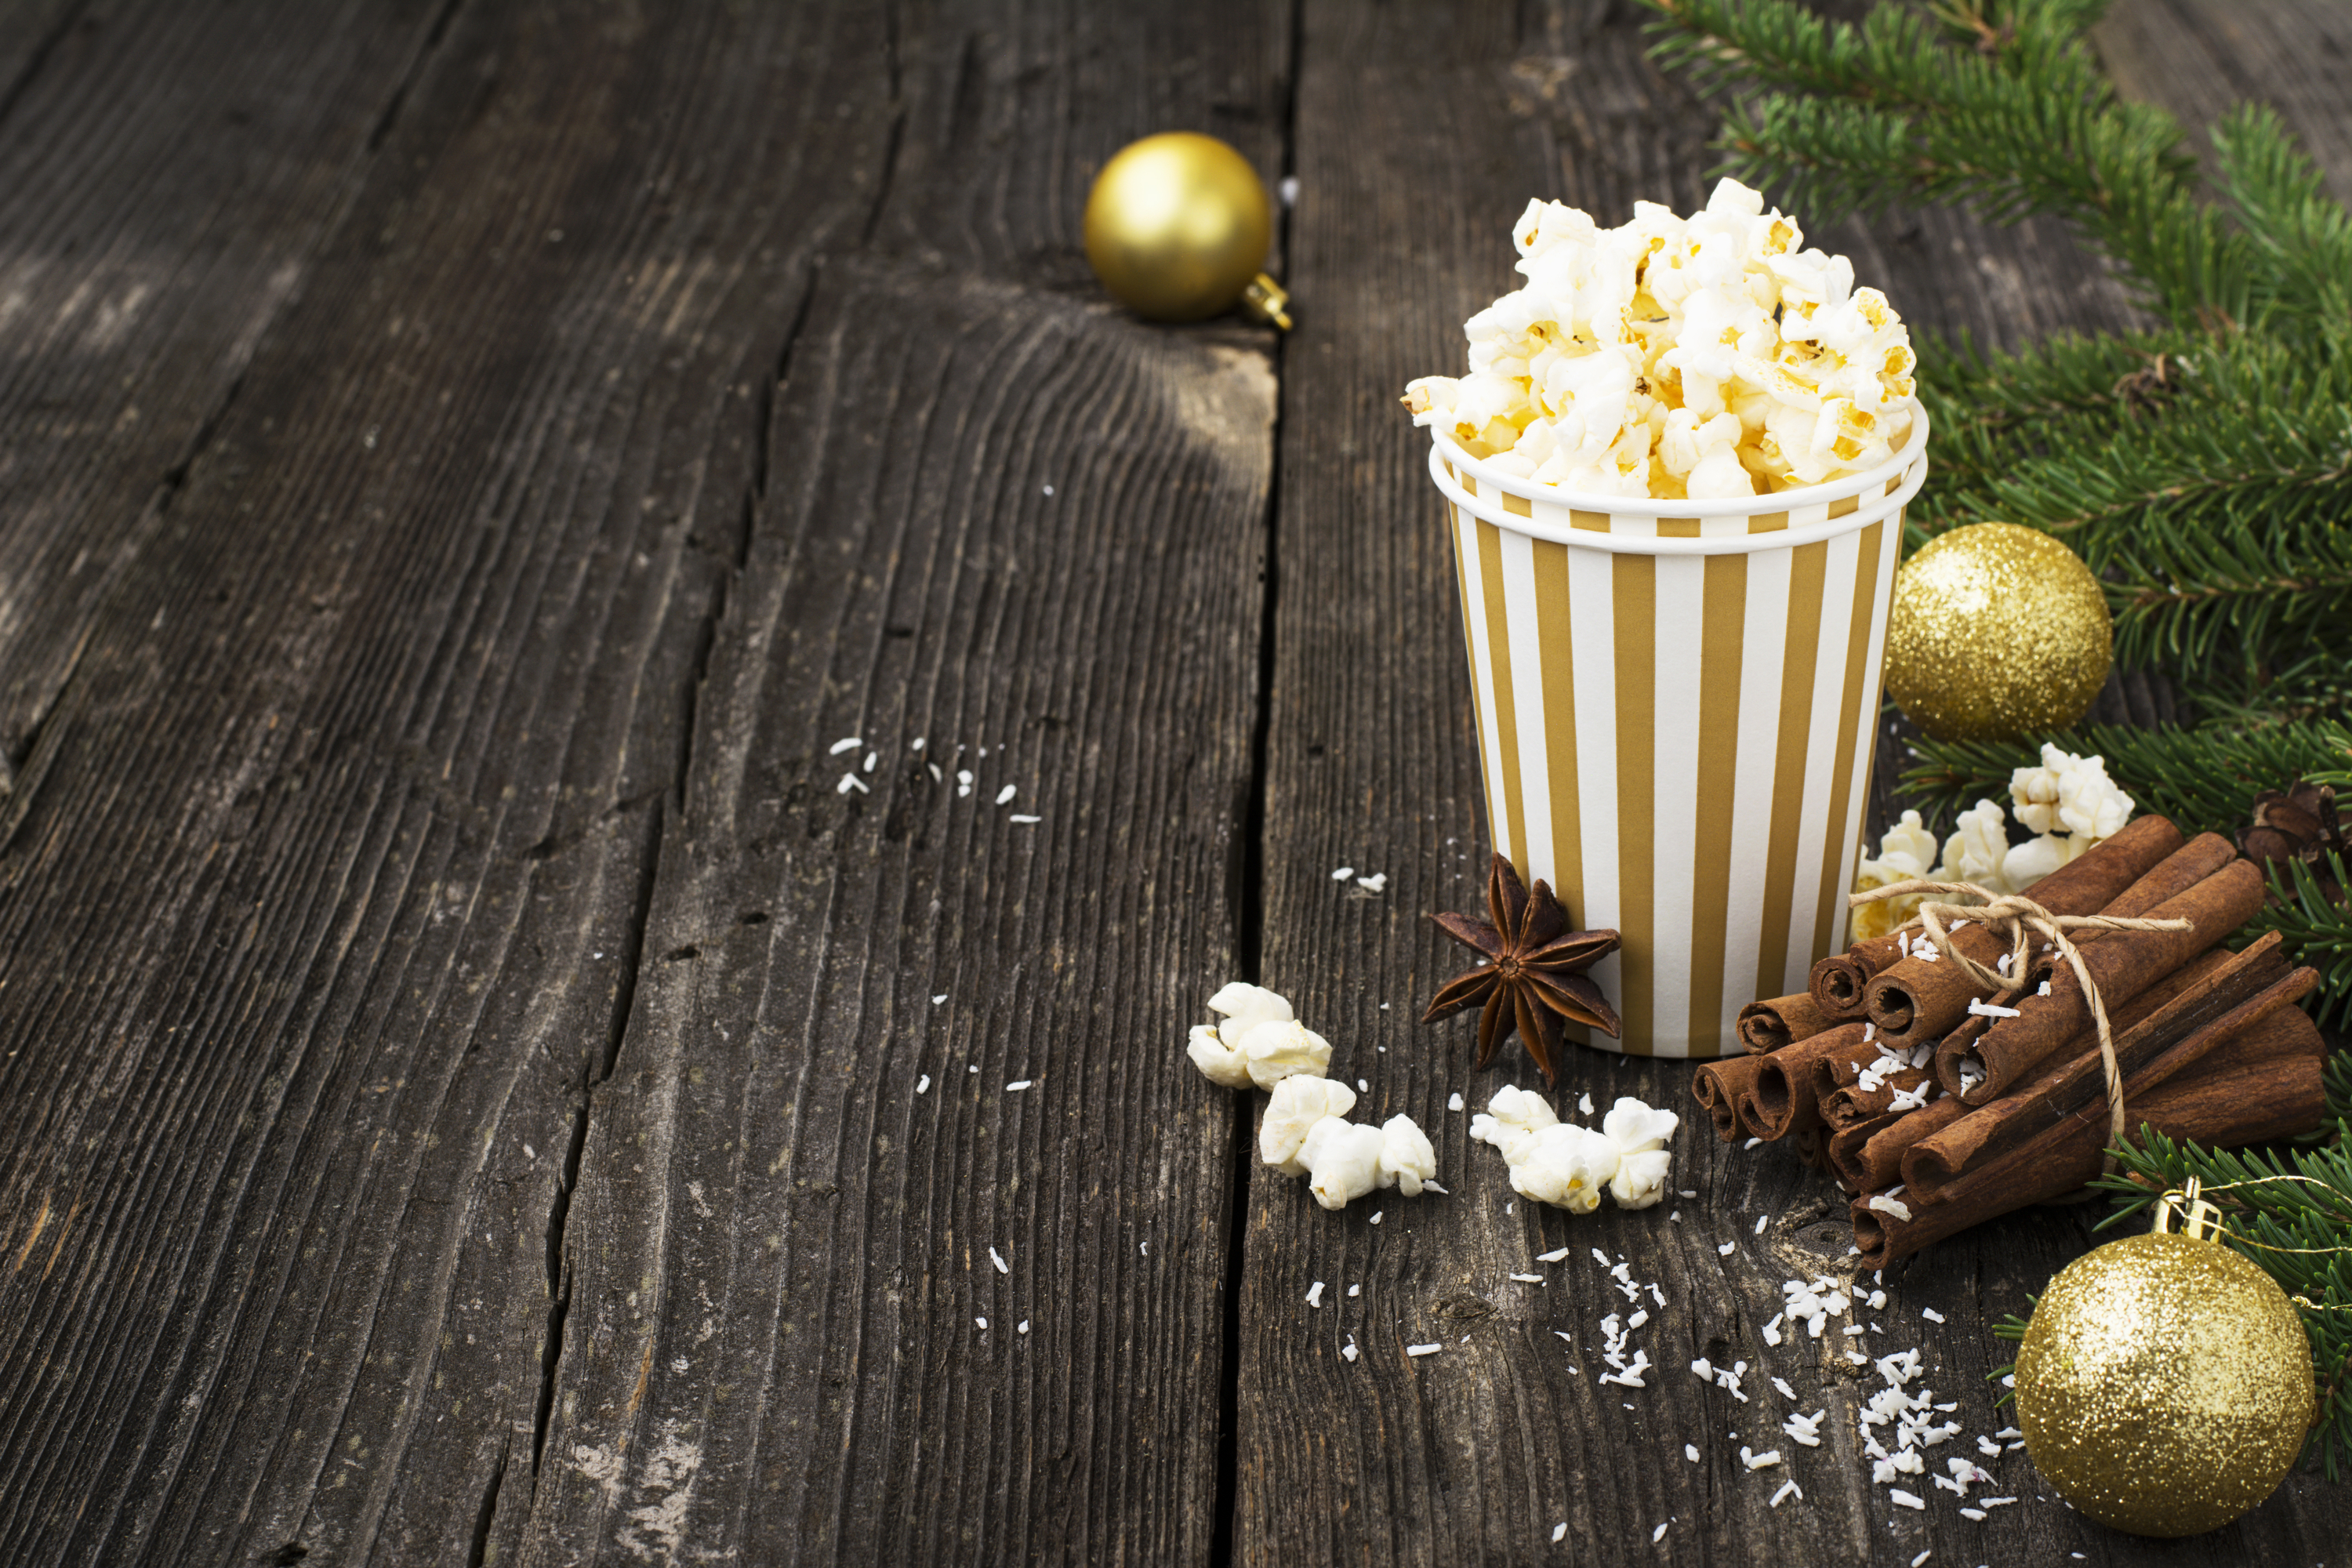 Looking for a good Christmas movie to snuggle up and watch this winter? These Hallmark Christmas movies should be at the top of your list.